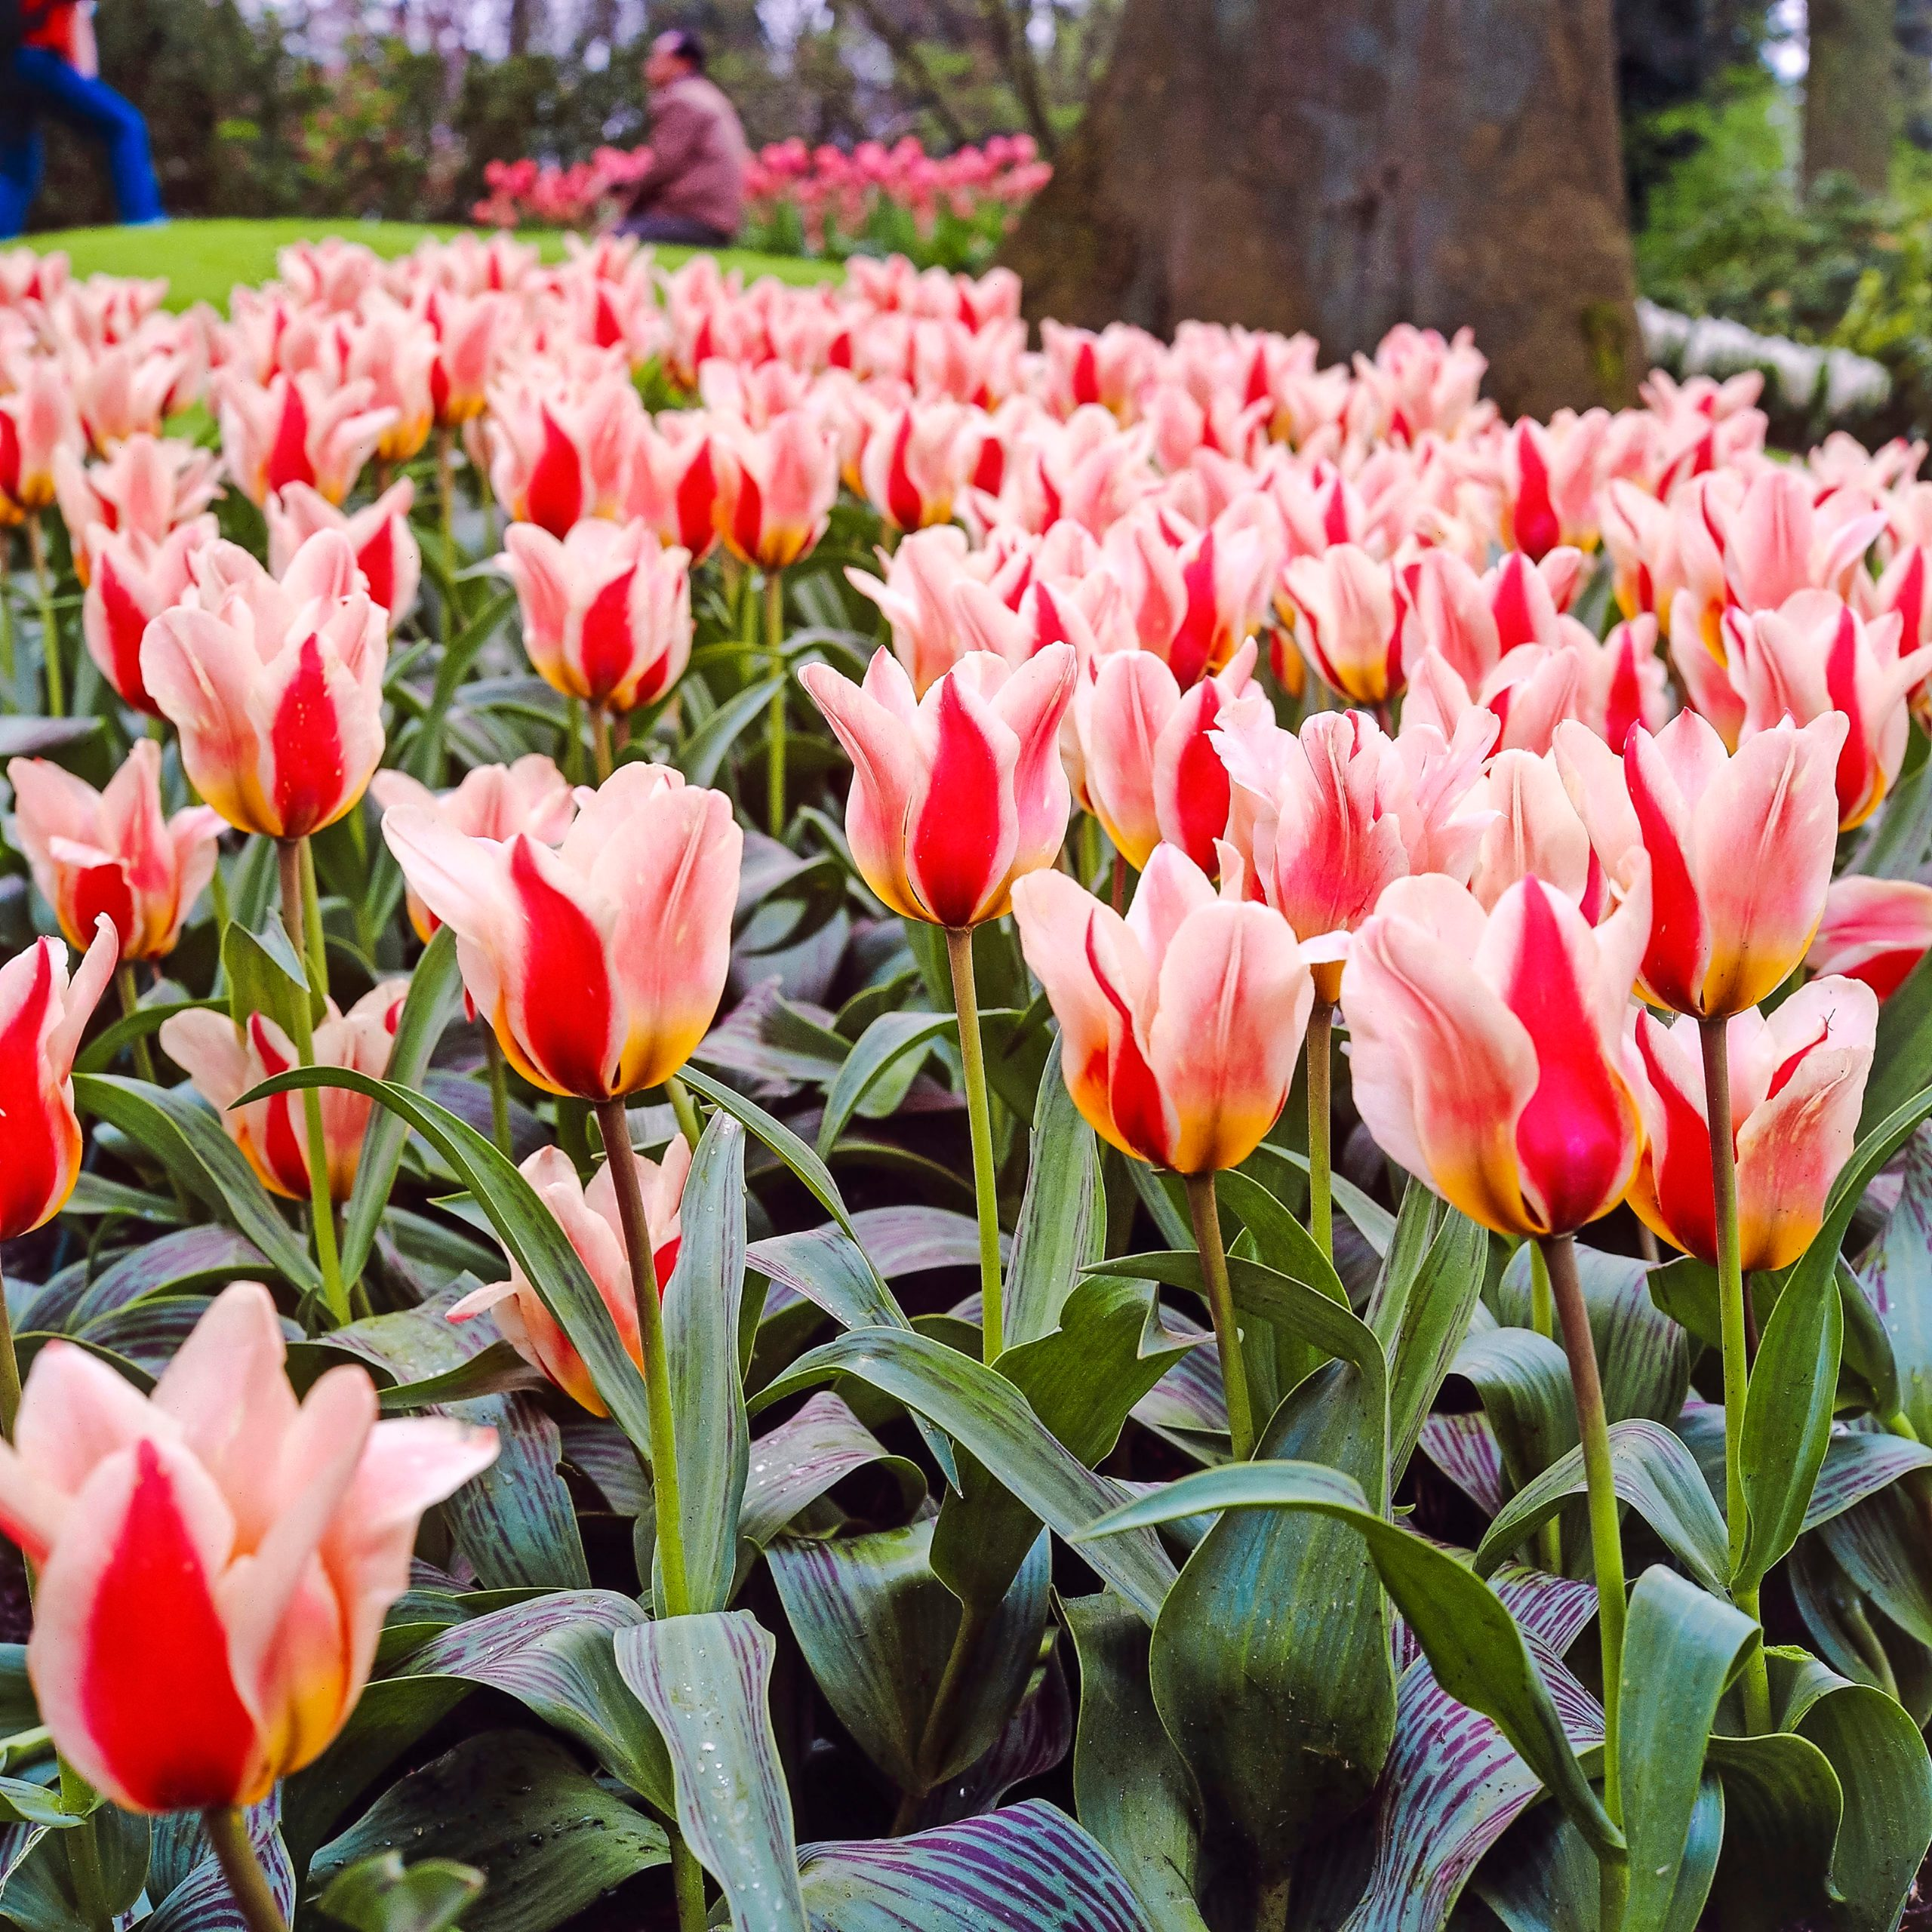 A bed of Mary Ann tulips.